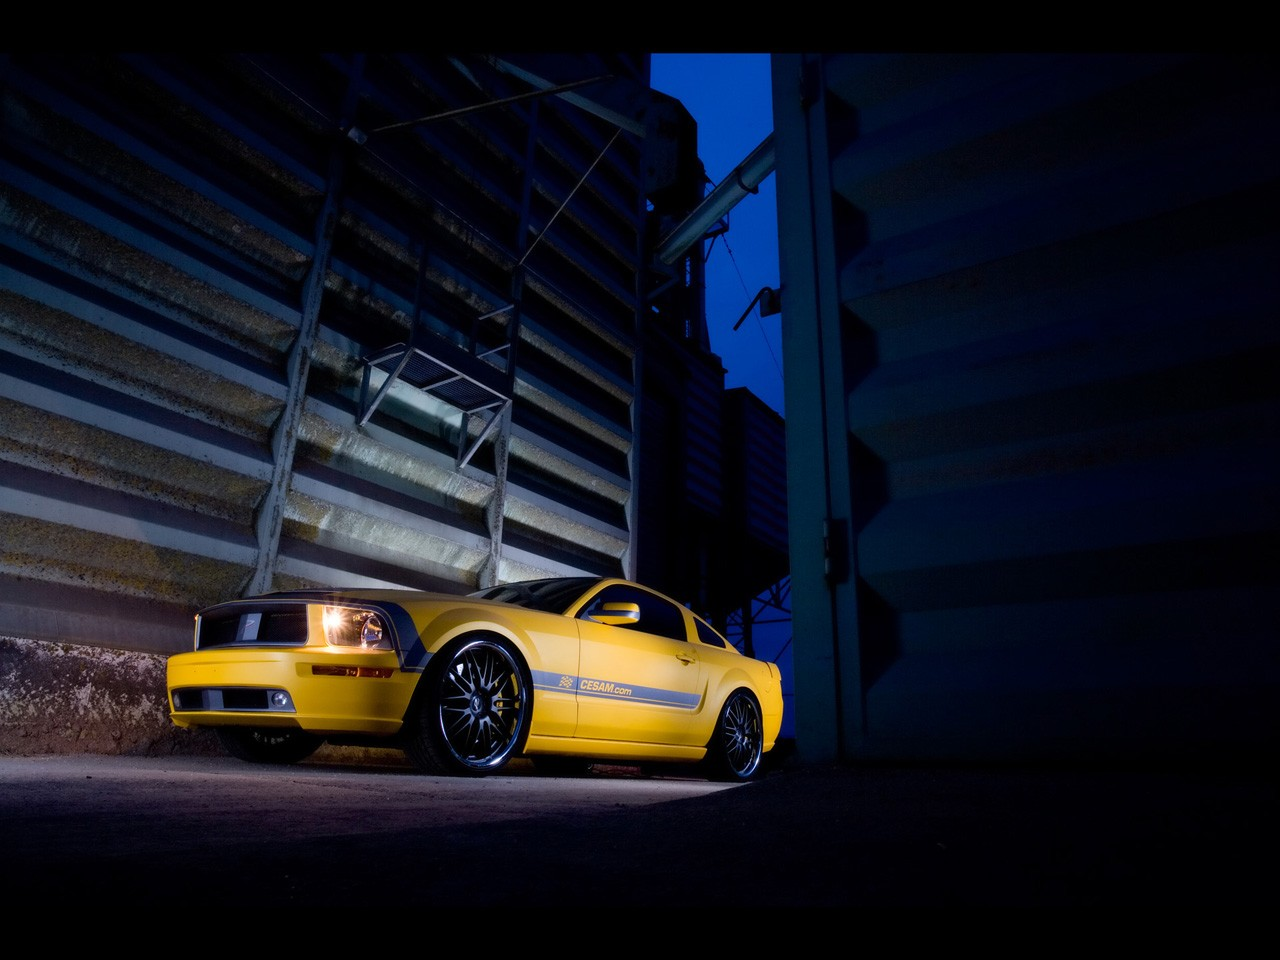 Cesam Ford Mustang 2007 - Parotech